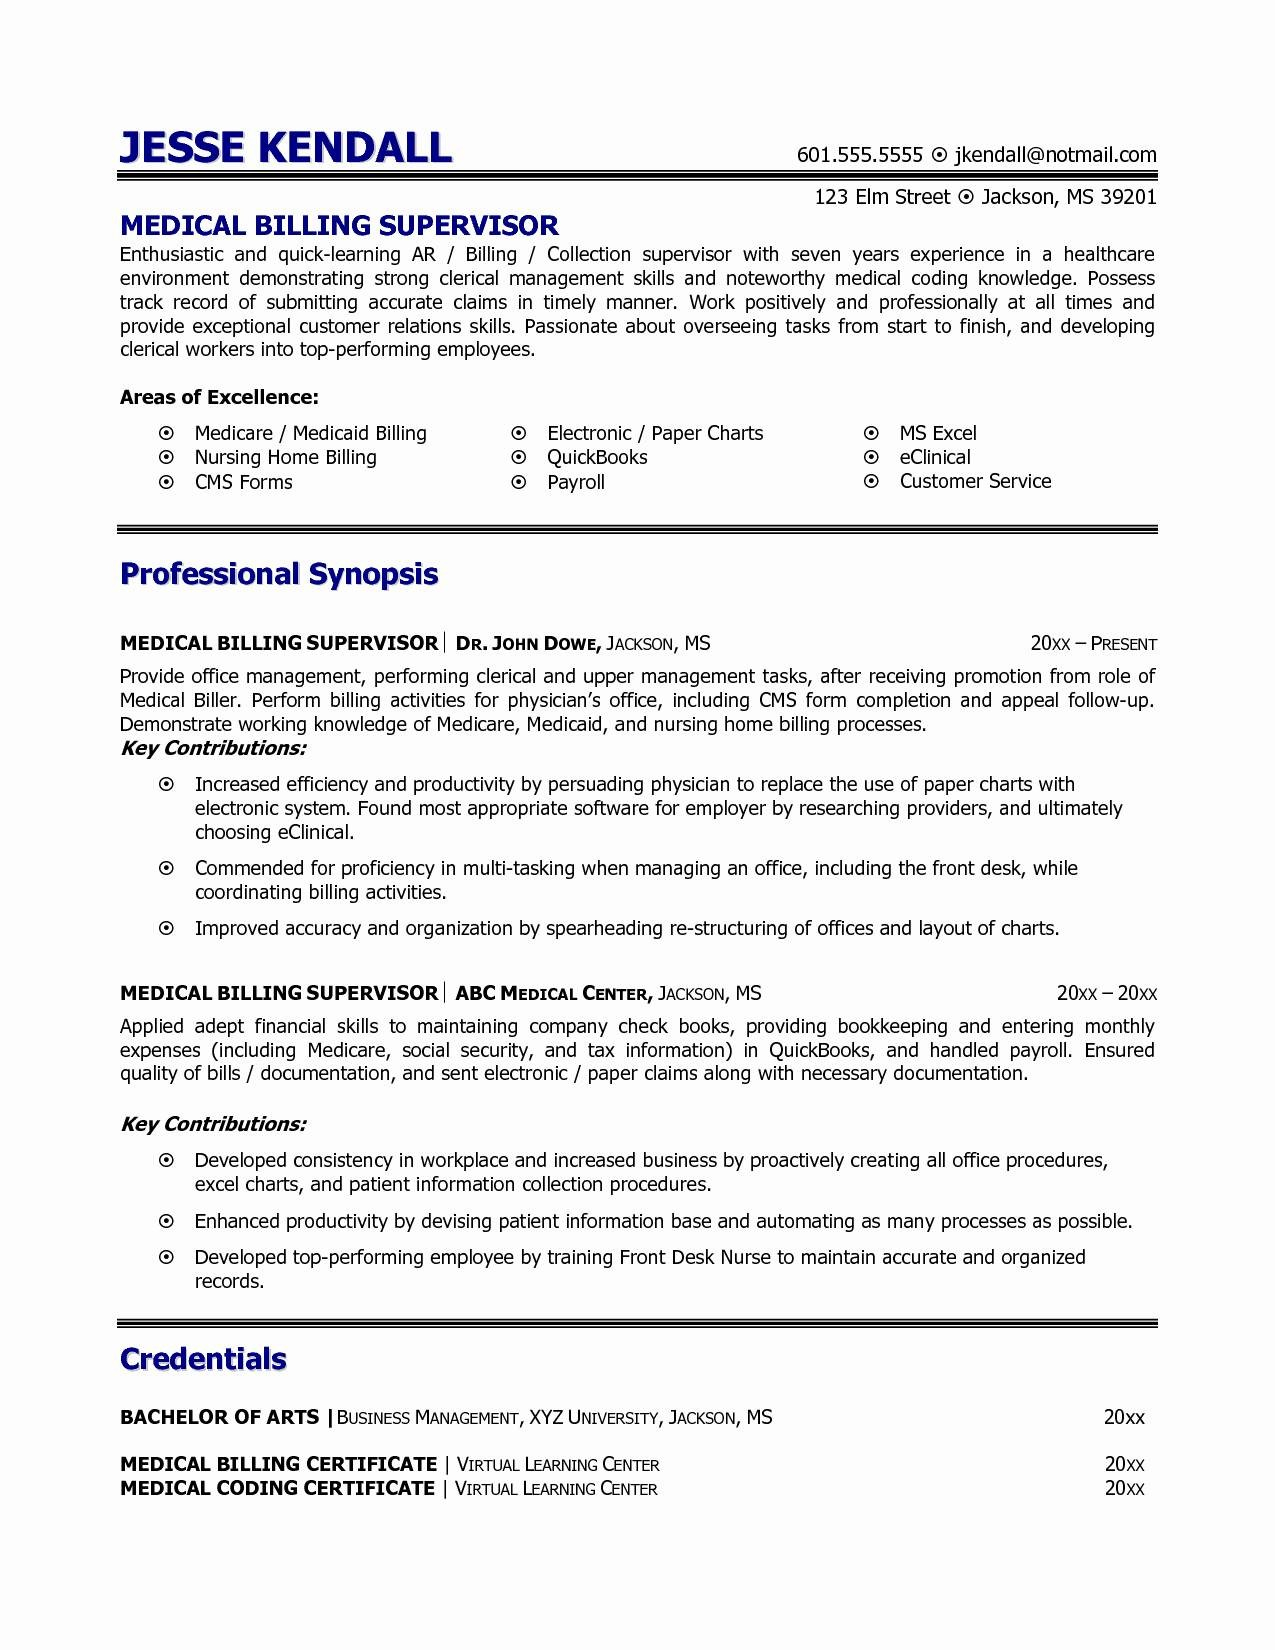 Medical Billing and Coding Resume - Medical Coding Resume Samples Best Job Description Medical